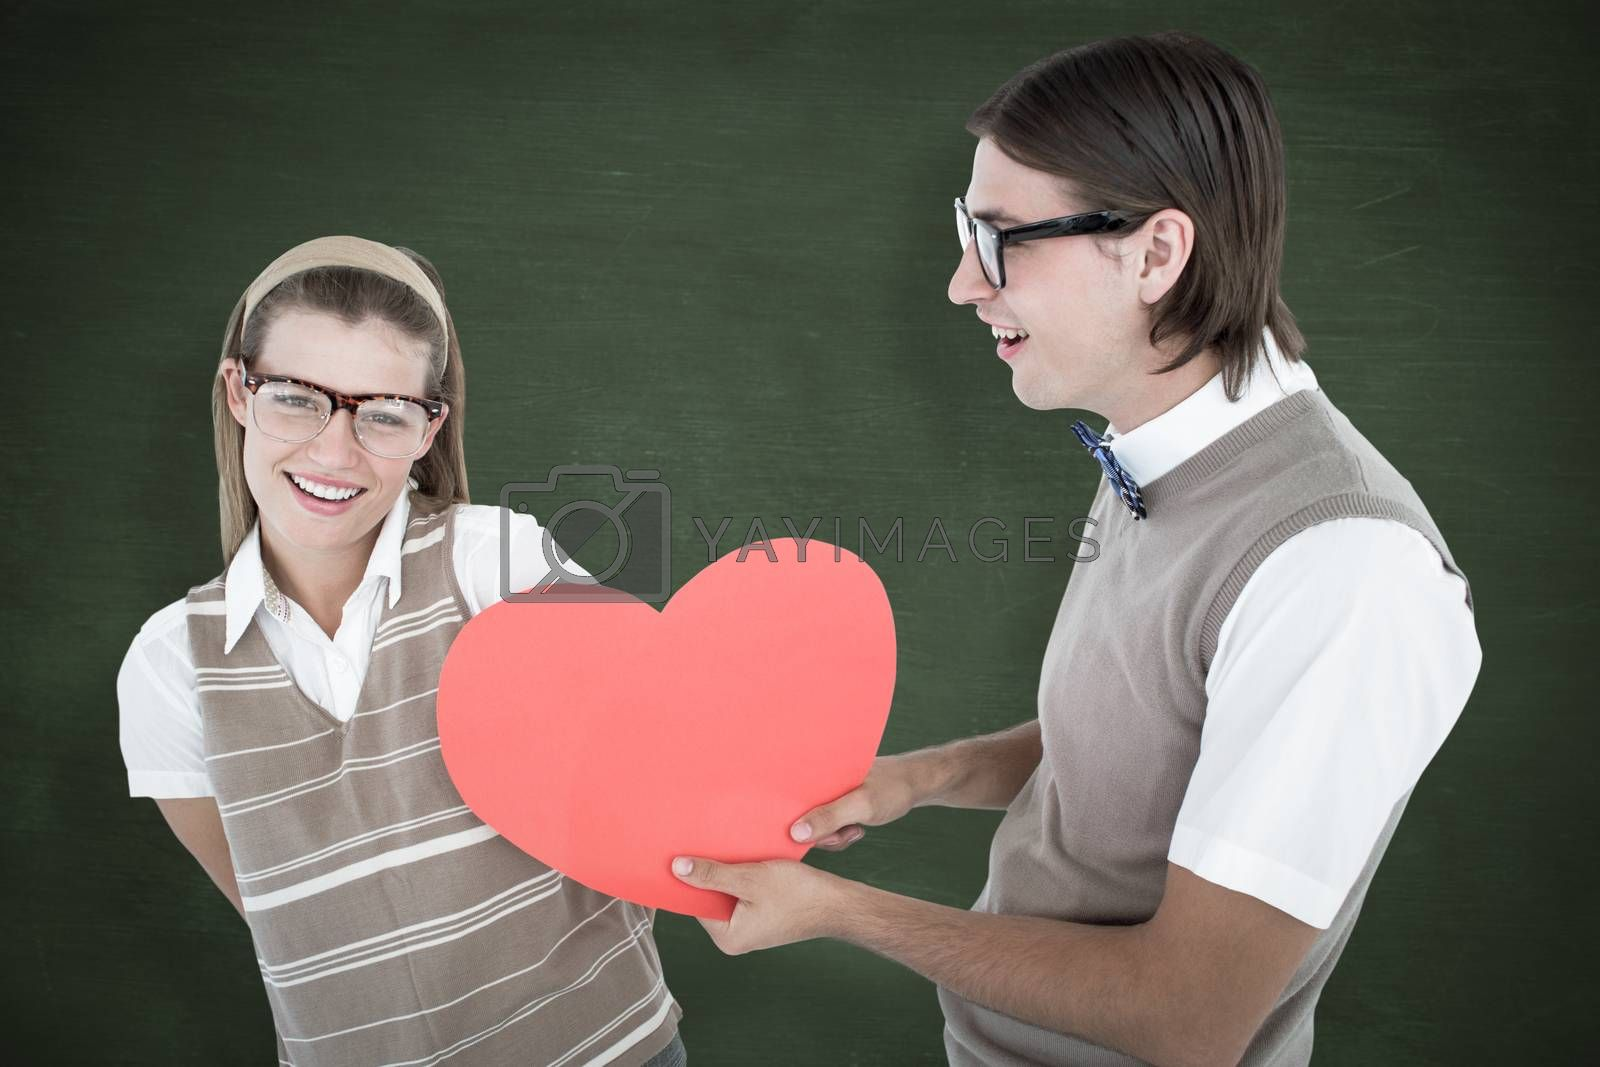 Geeky hipster offering red heart to his girlfriend  against green chalkboard